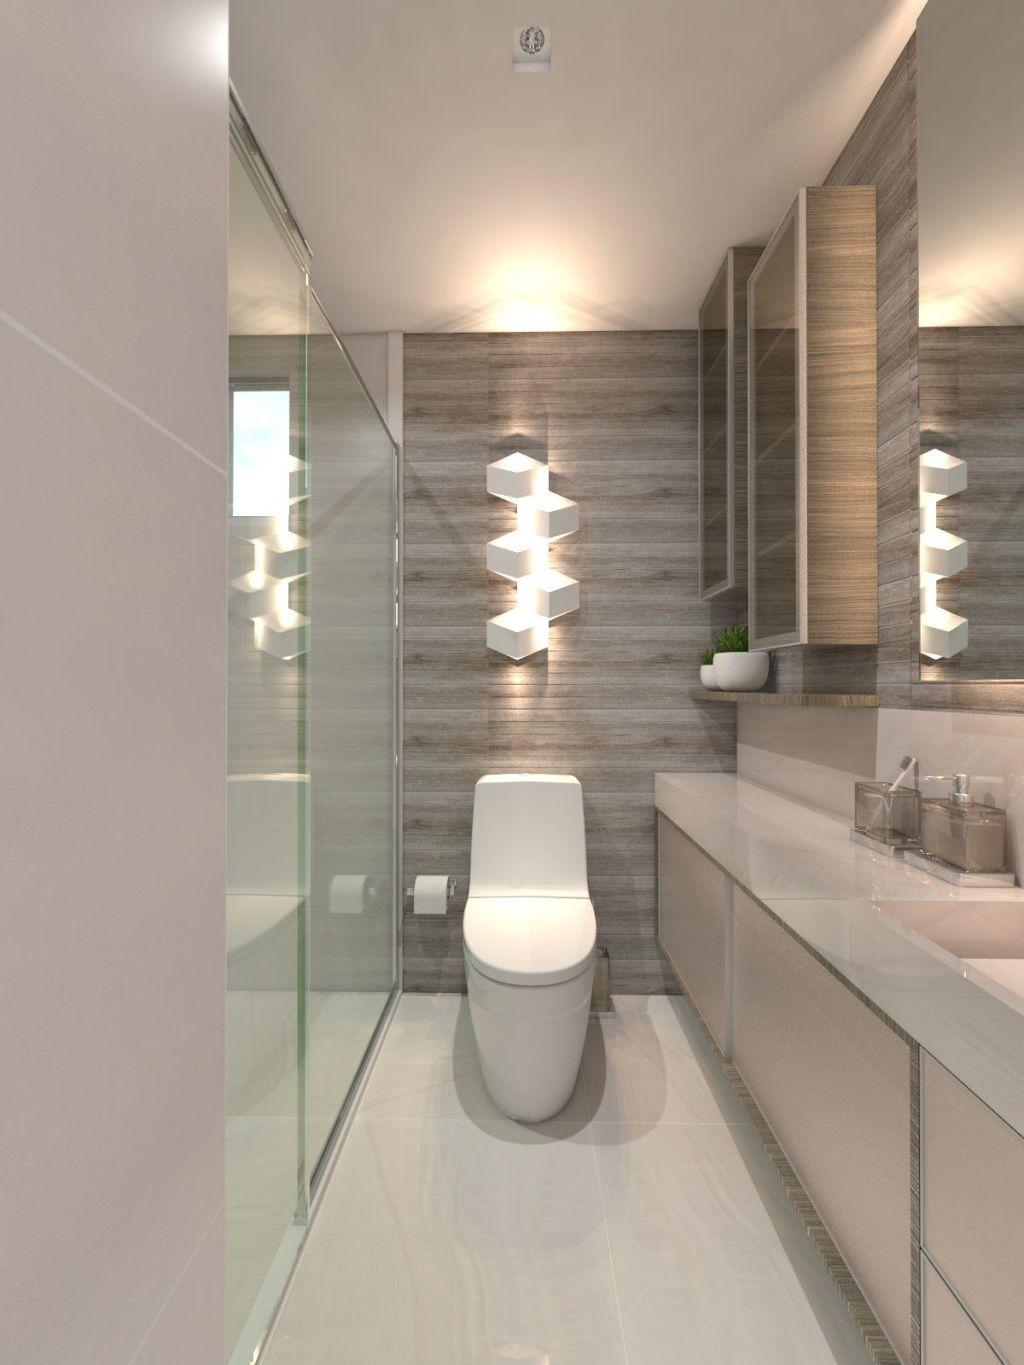 Bathroom Finishing: Types, Models and Photos 5